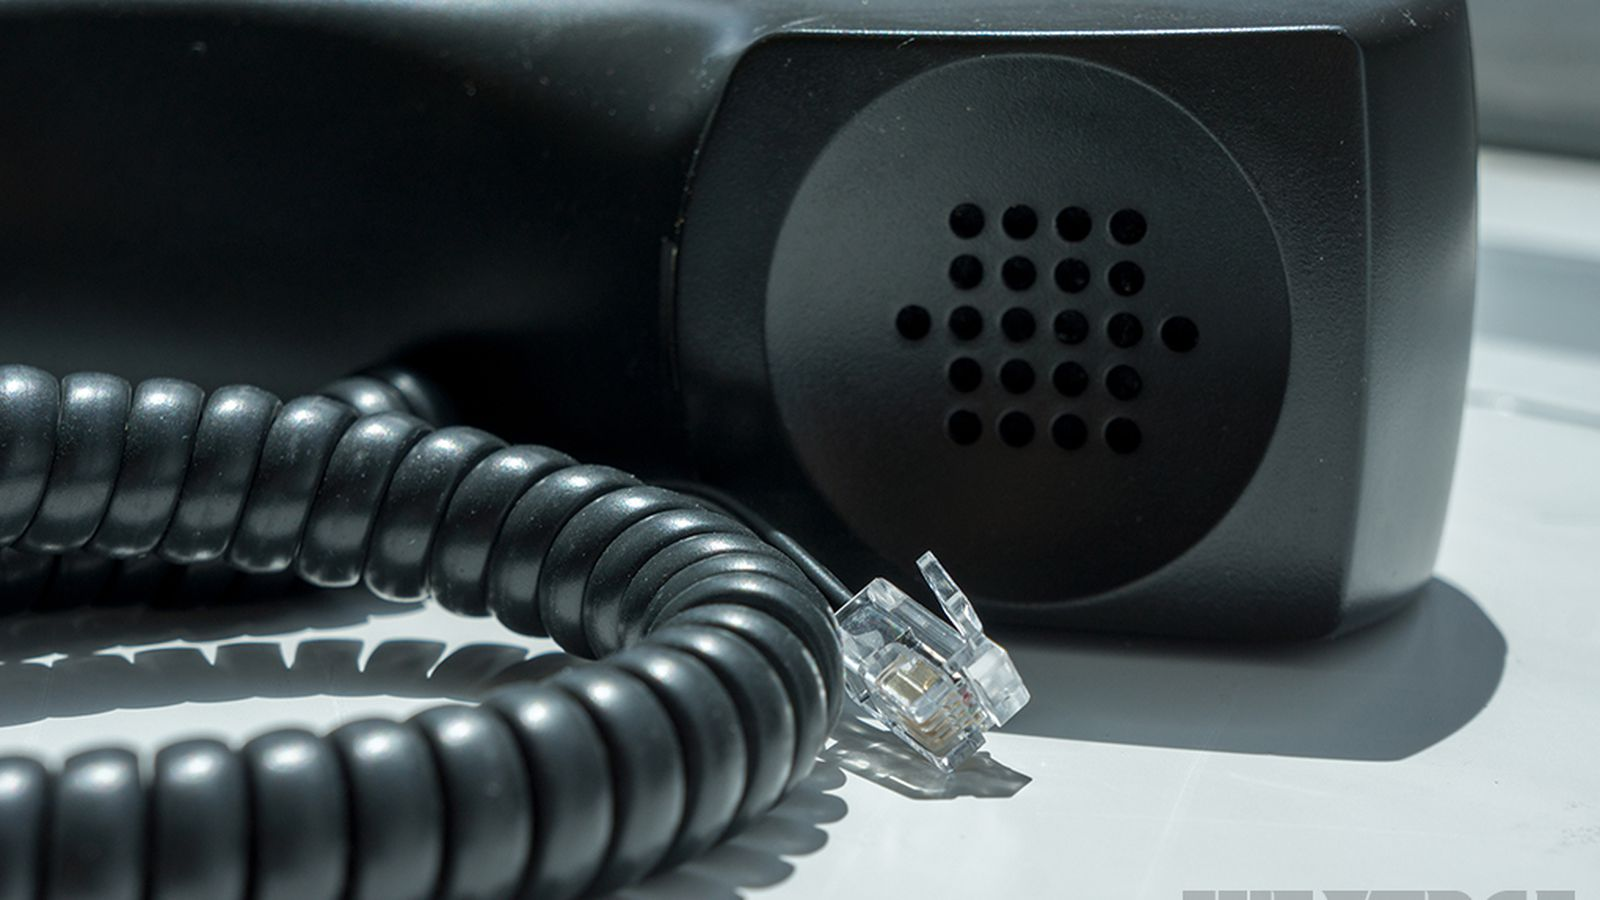 Most US Households Have Given up Landlines for Cellphones